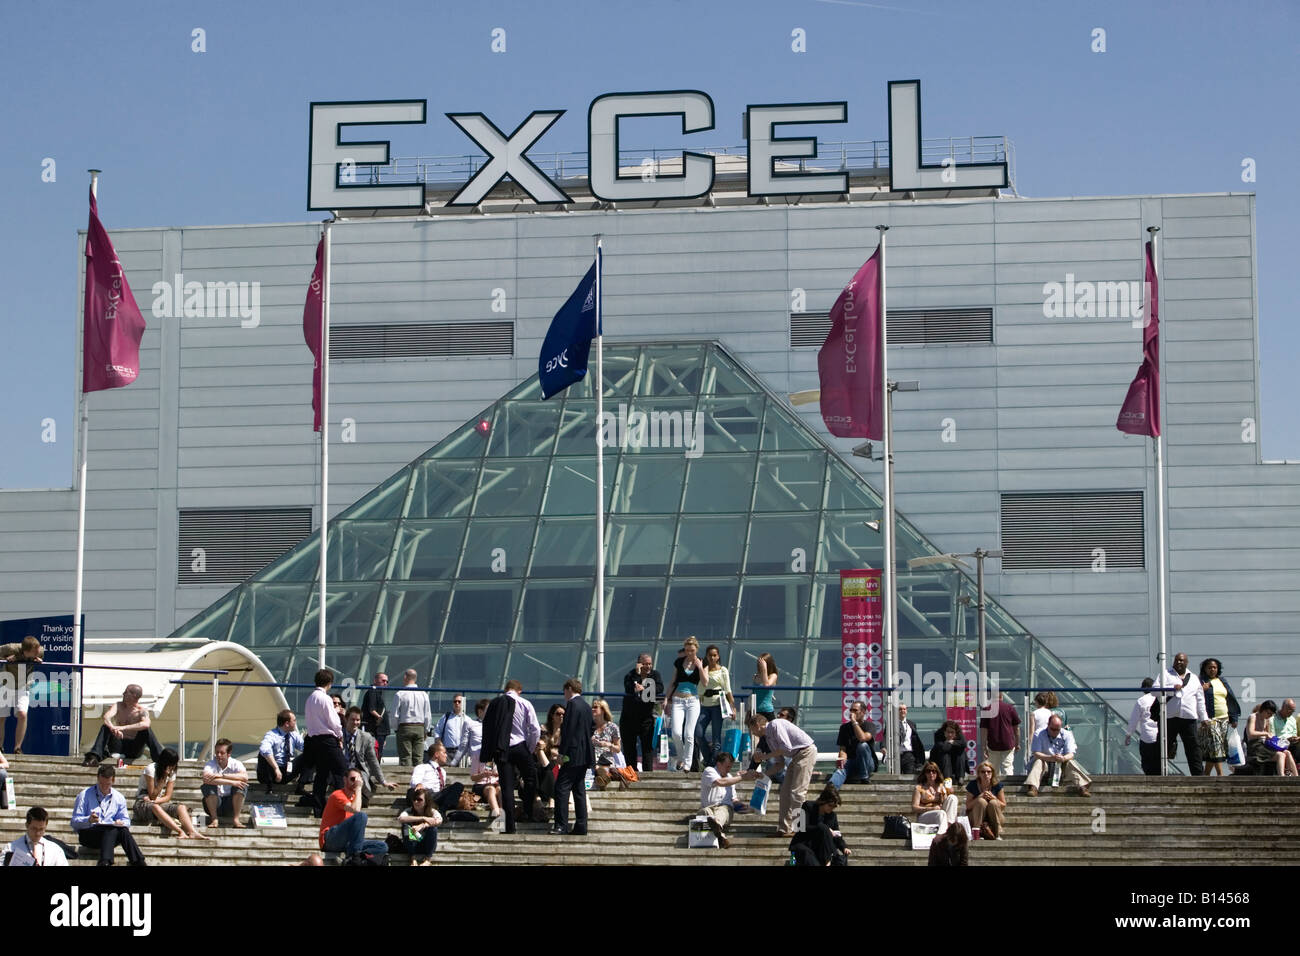 ExCel Exhibition Centre in London Docklands - Stock Image